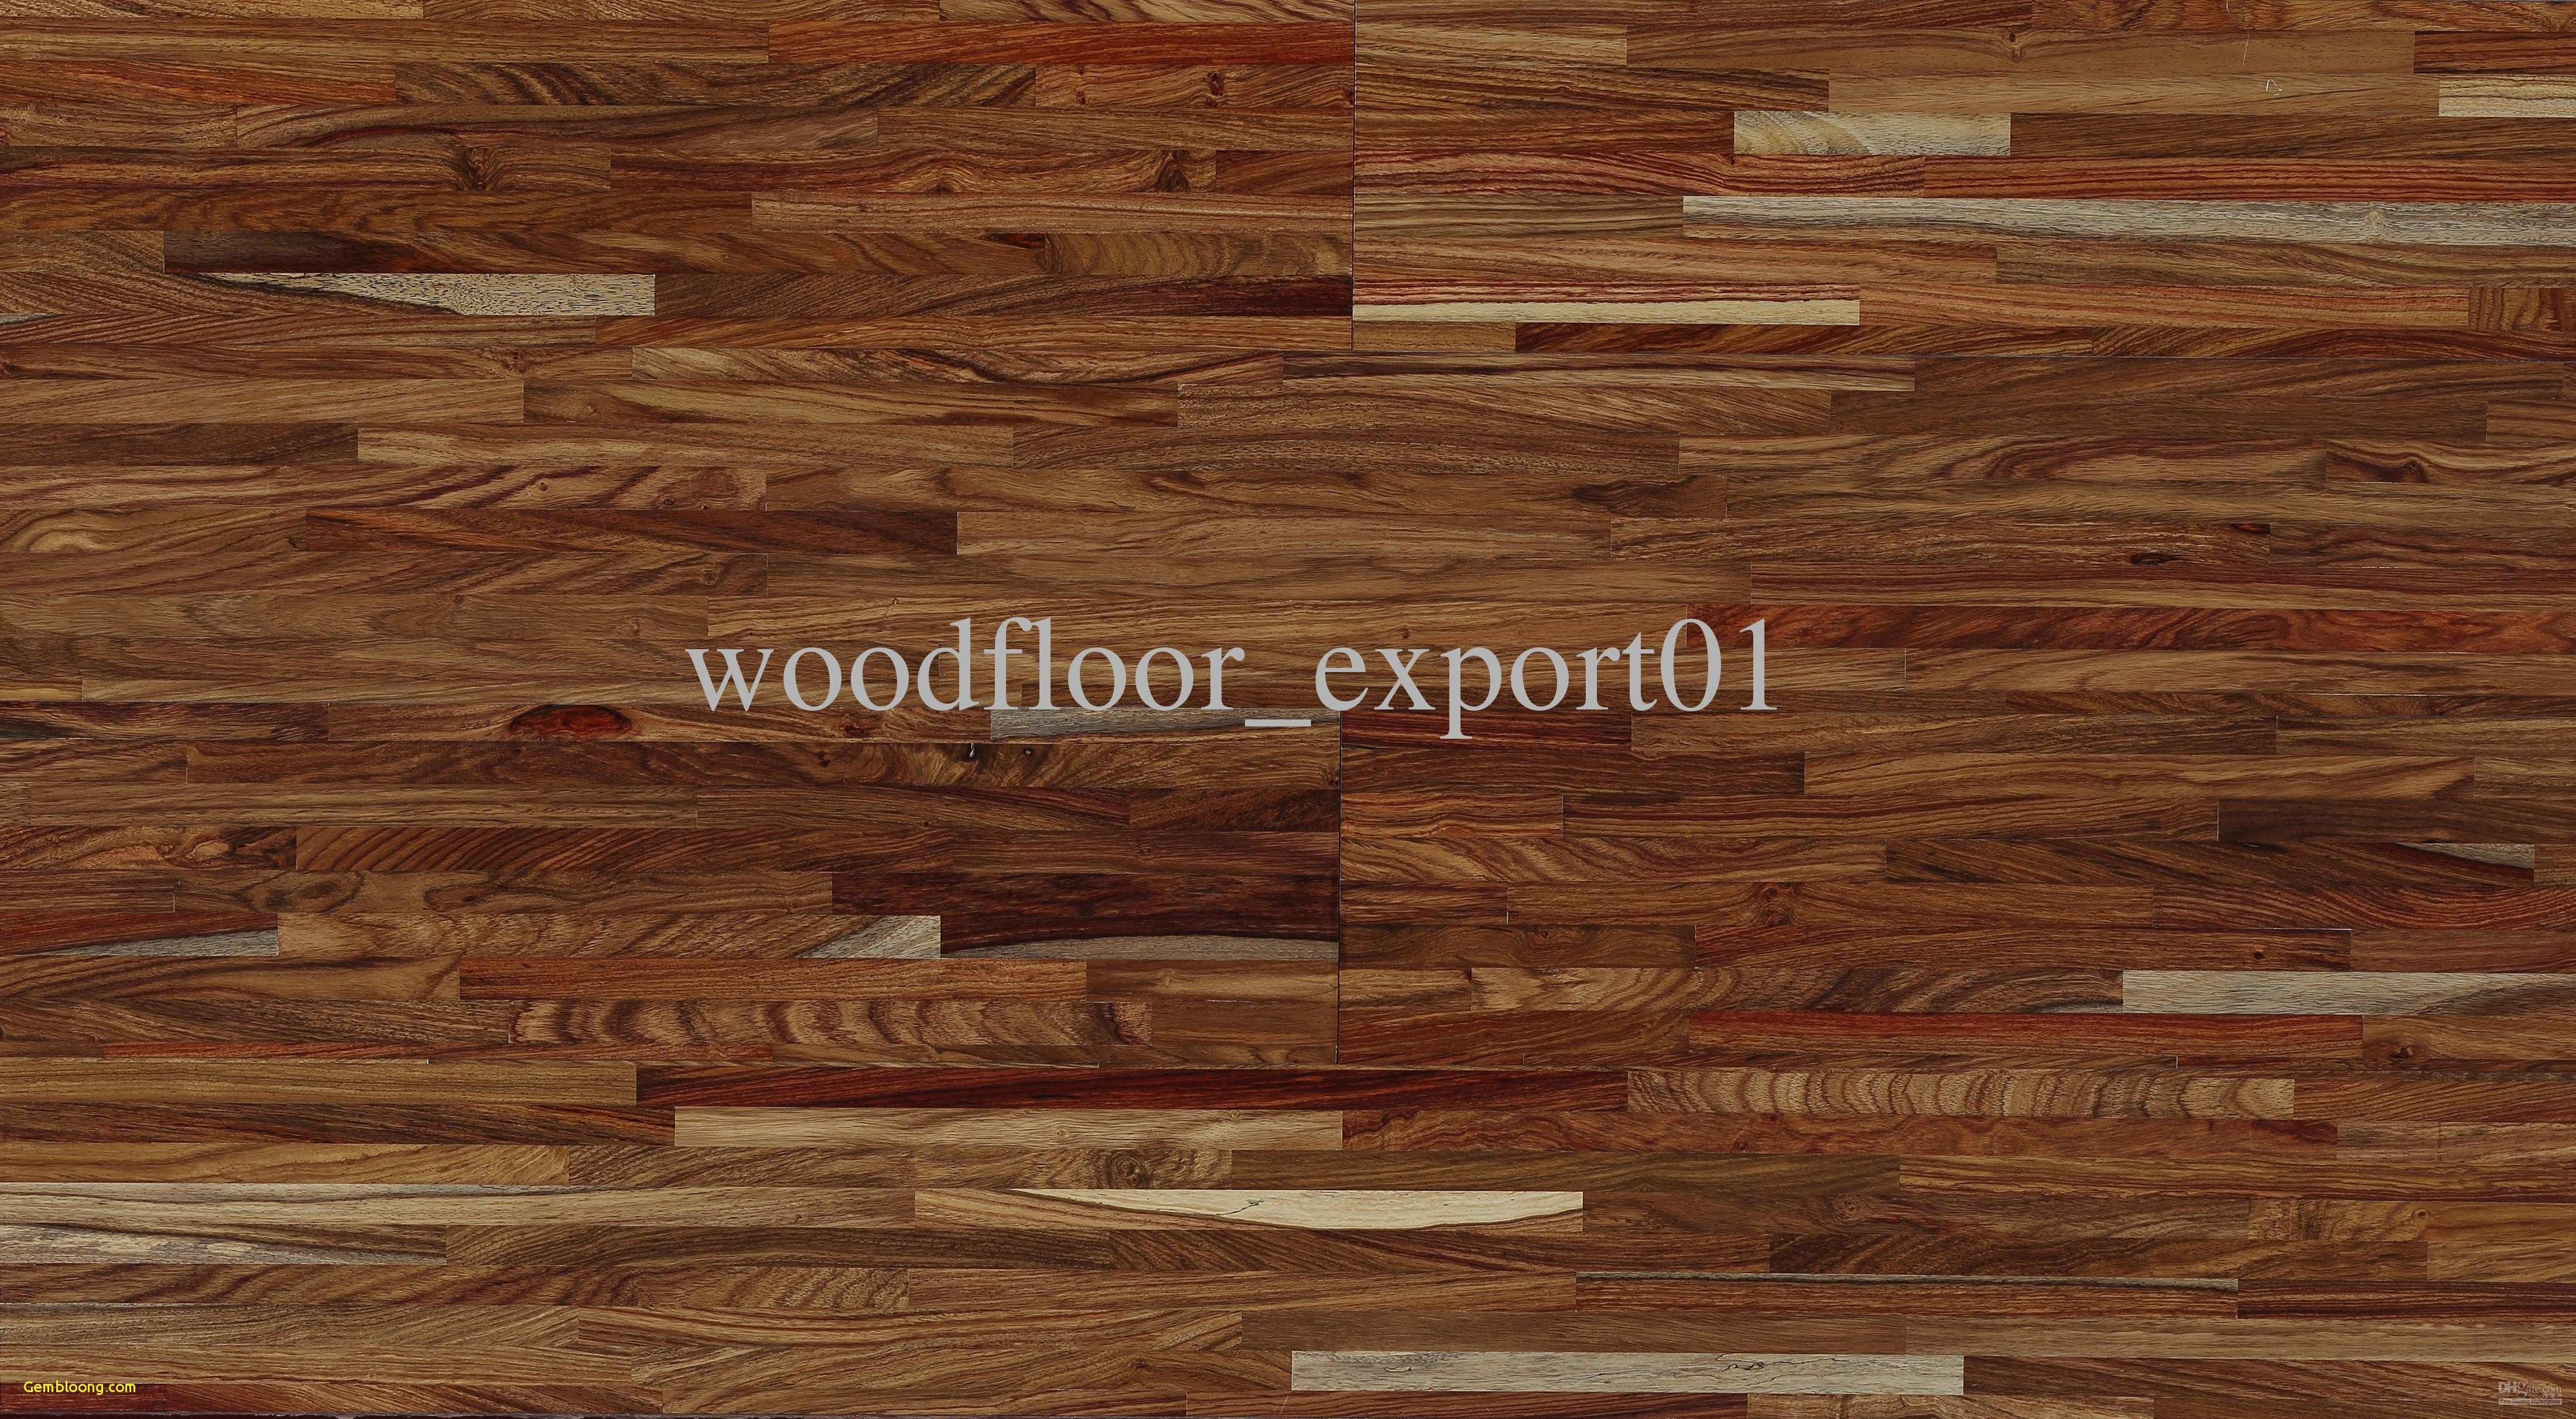 wholesale hardwood flooring for sale of where to buy hardwood facesinnature pertaining to where to buy hardwood flooring nj furniture design hard wood flooring new 0d grace place